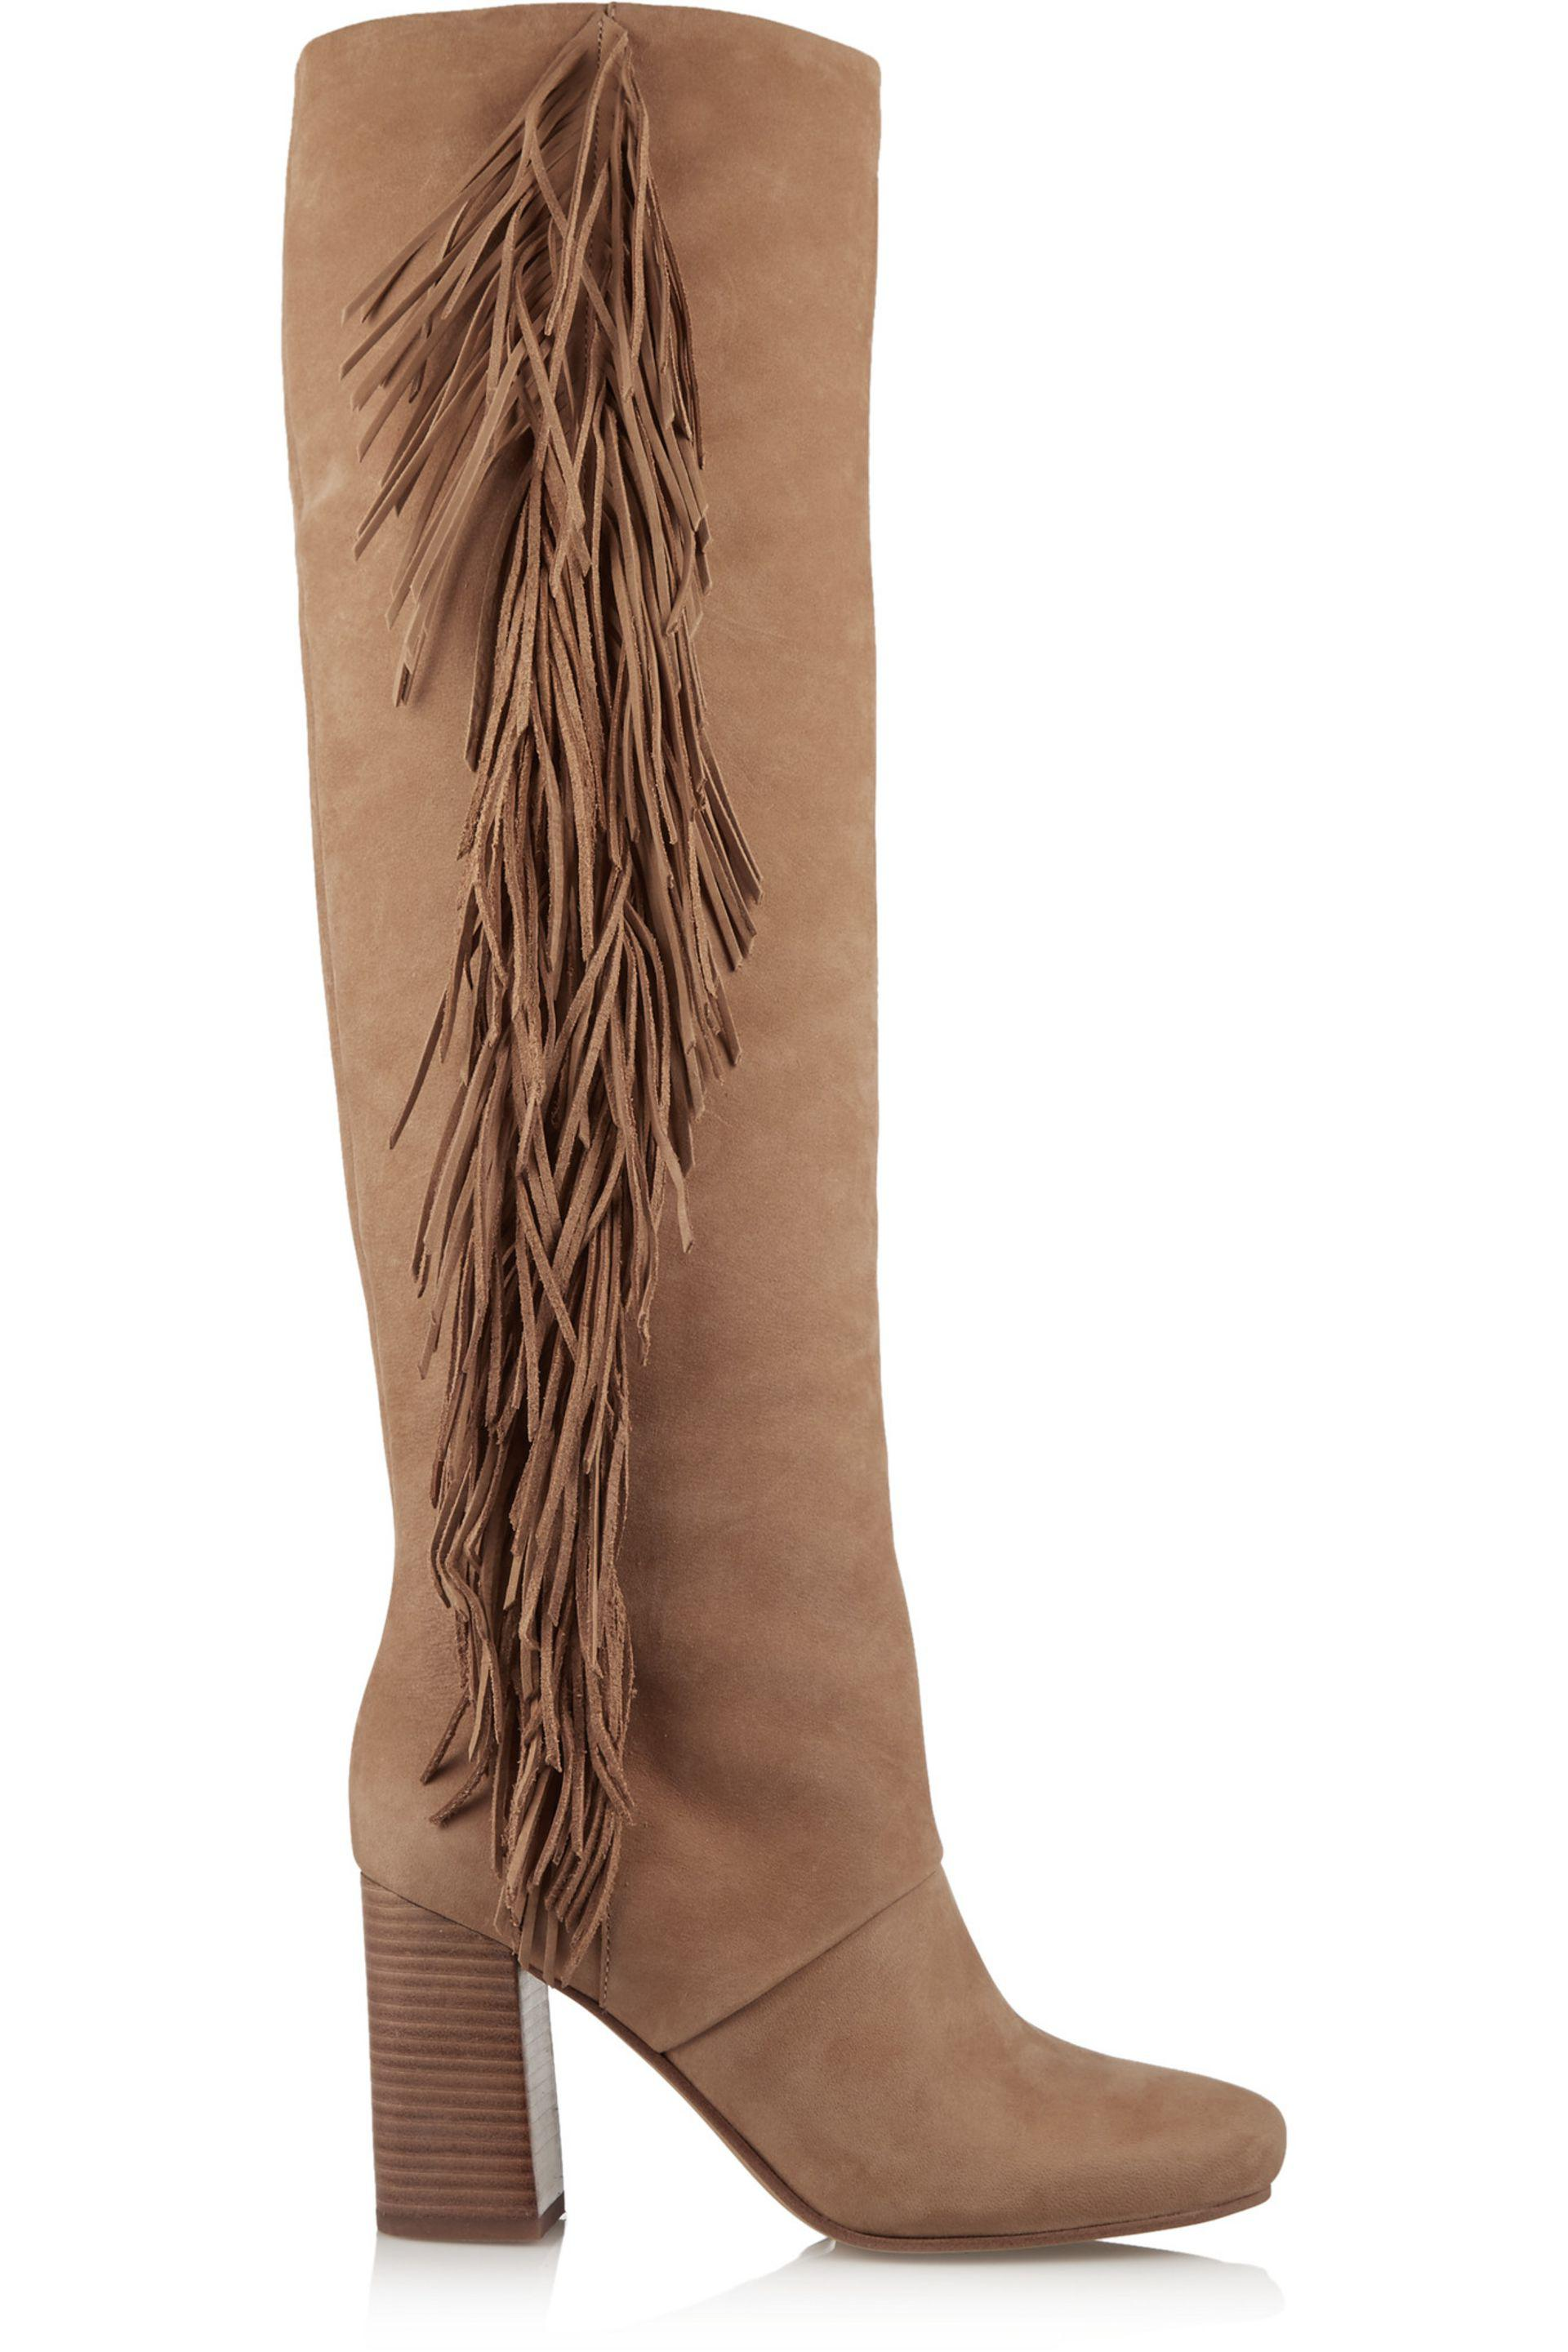 Sam Edelman. Women's Brown Taylan Fringed Nubuck Knee Boots